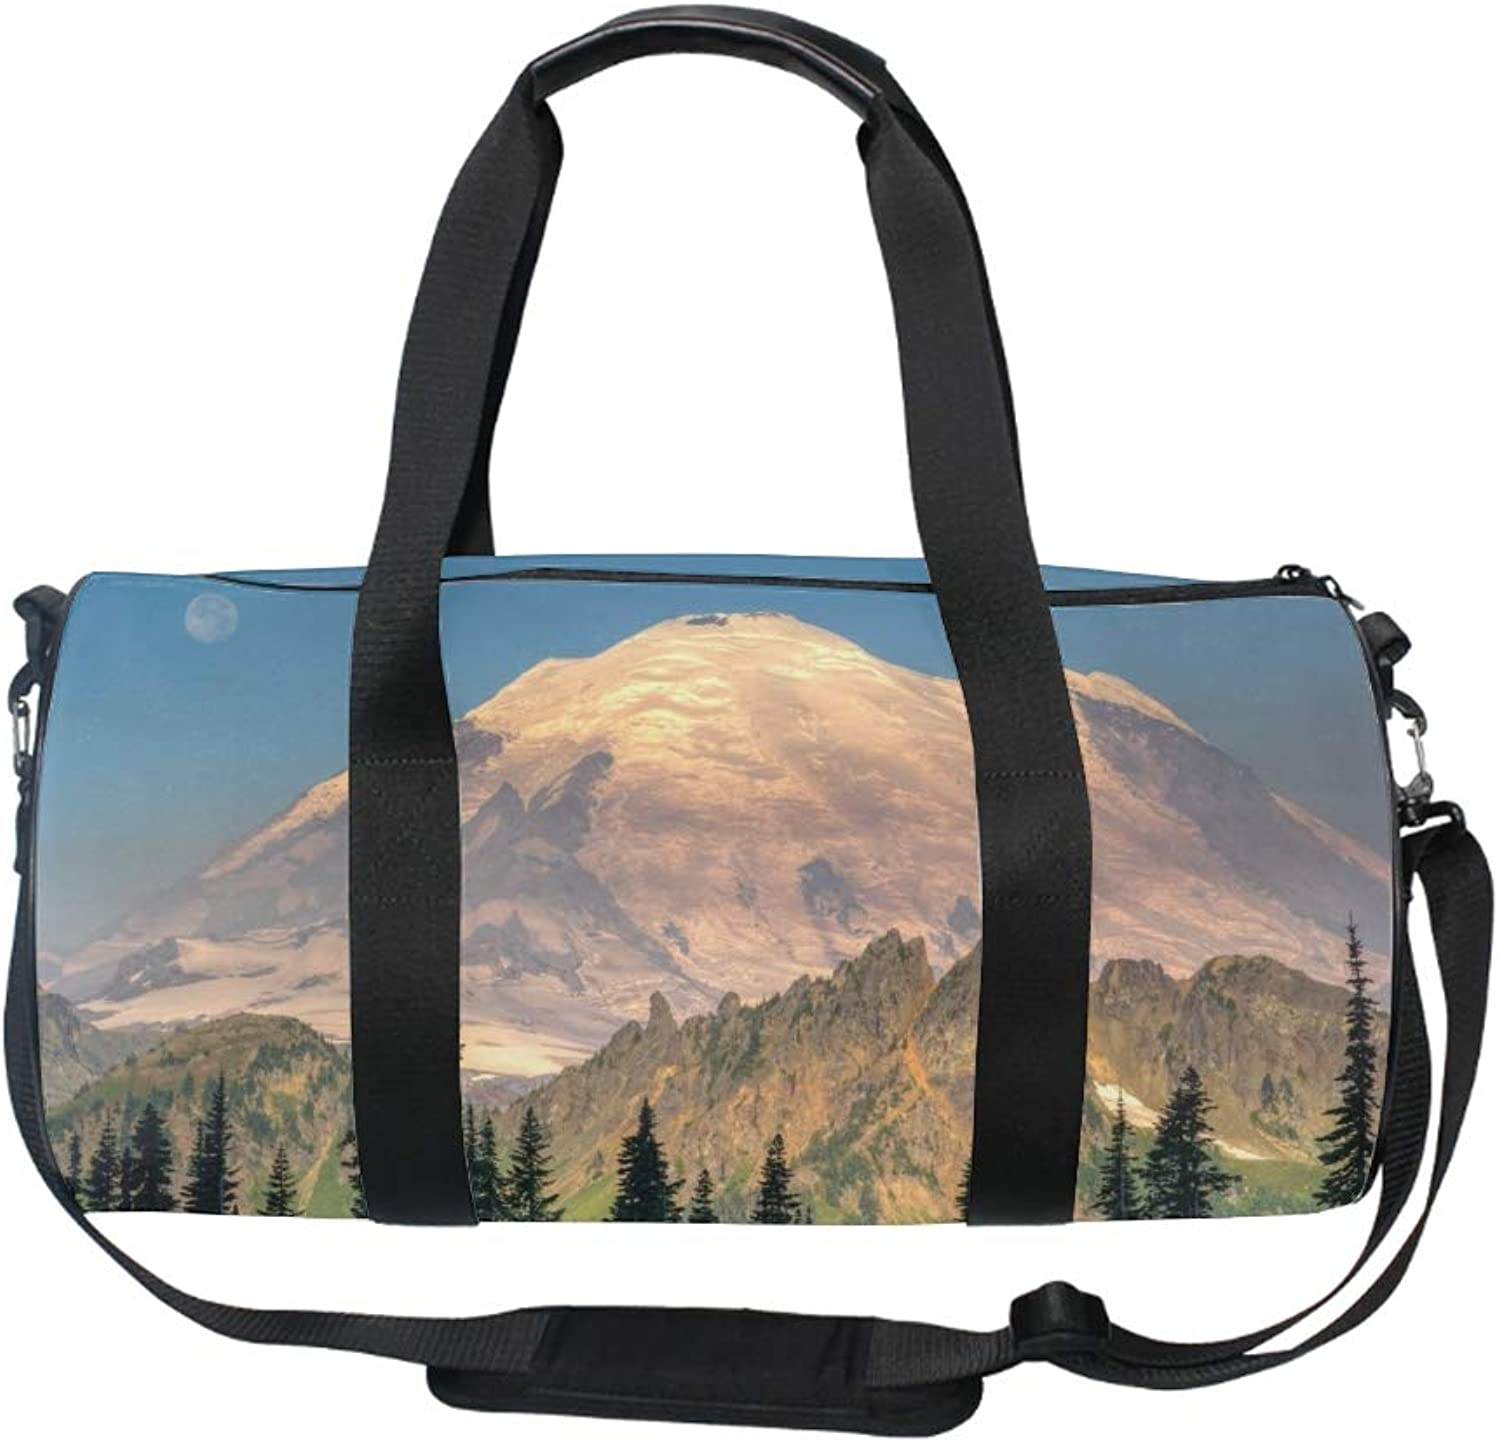 17  Blank Sports Duffle Bag Mountain Moon Tree Gym Bag Travel Duffel with Adjustable Strap